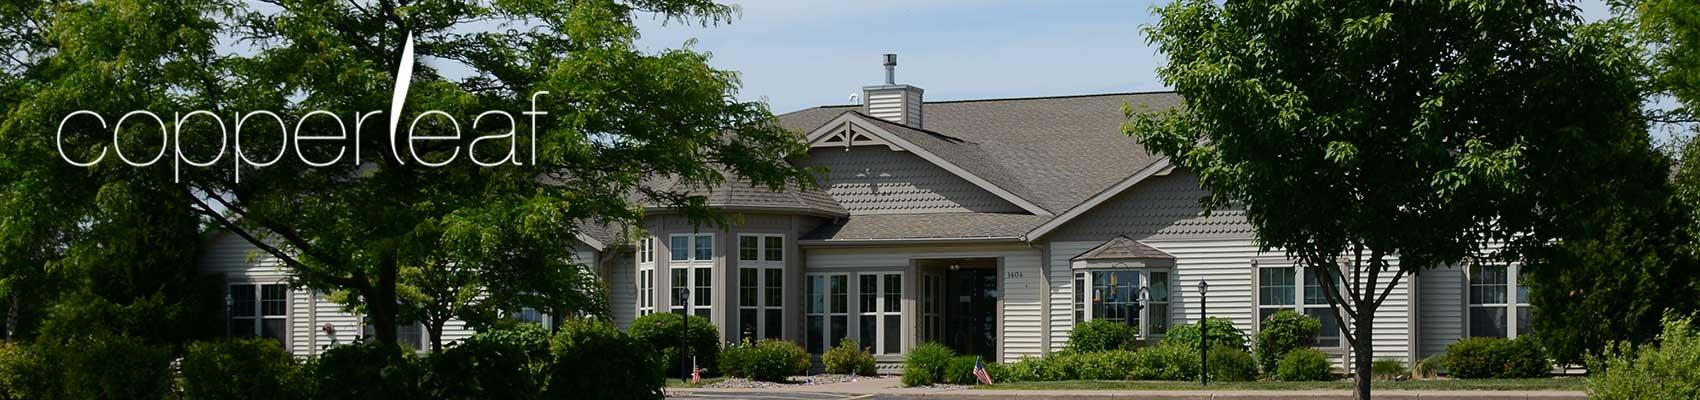 senior assisted living in Swan Wisconsin Marathon County